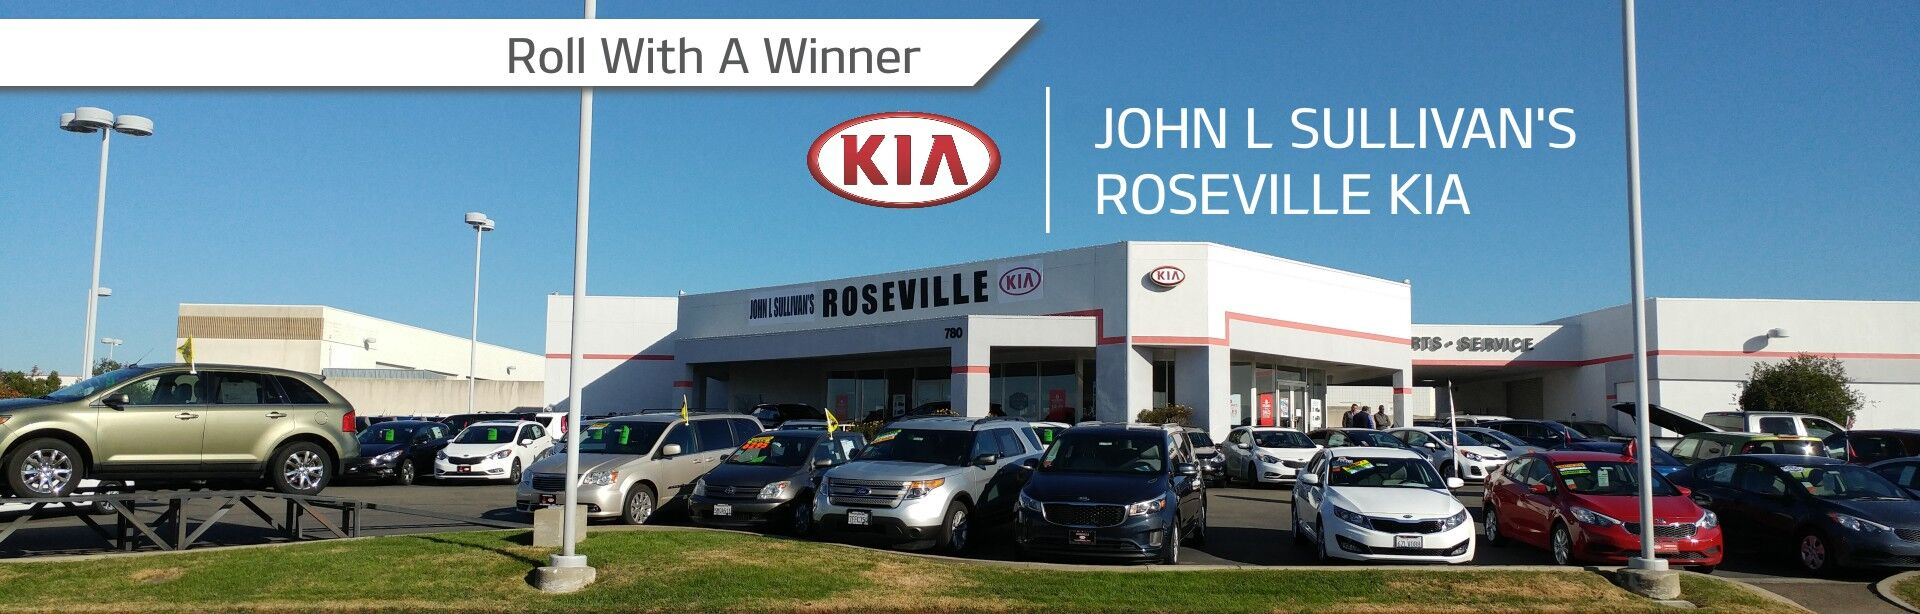 kia dealership roseville ca used cars john l sullivan 39 s roseville kia. Black Bedroom Furniture Sets. Home Design Ideas